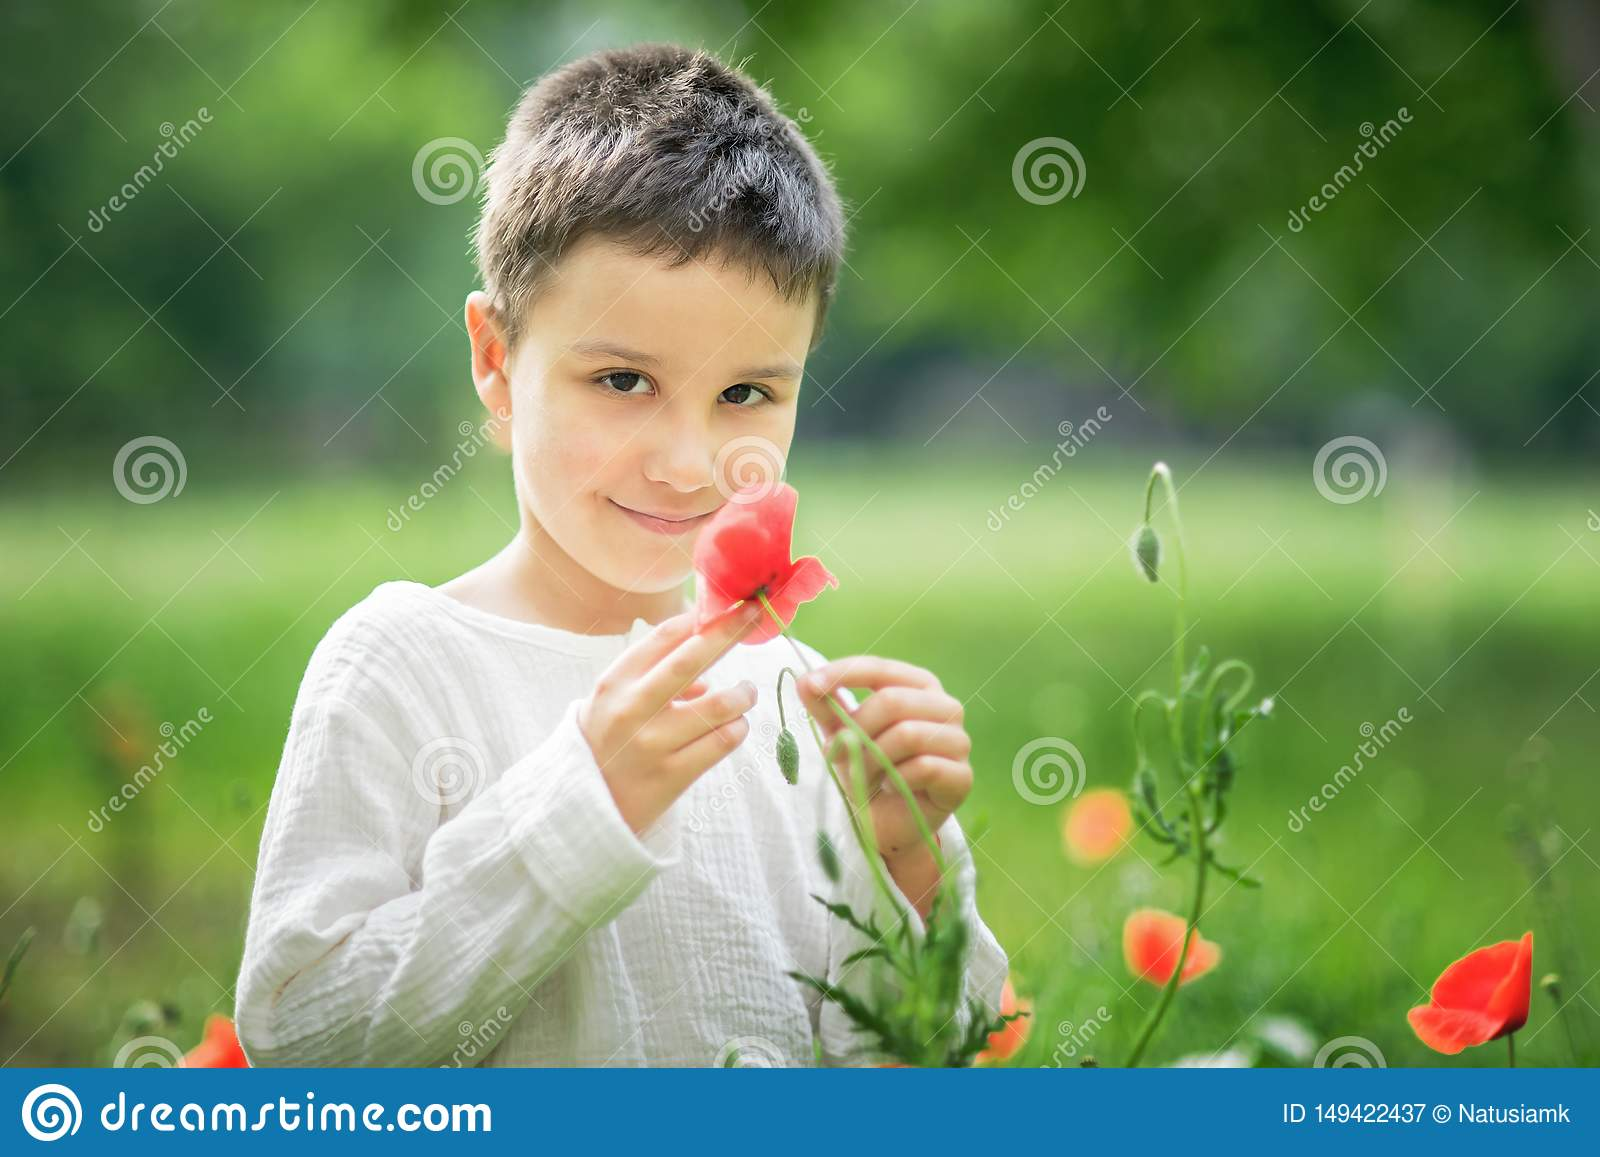 Happy little smiling boy standing and smiling in poppy field